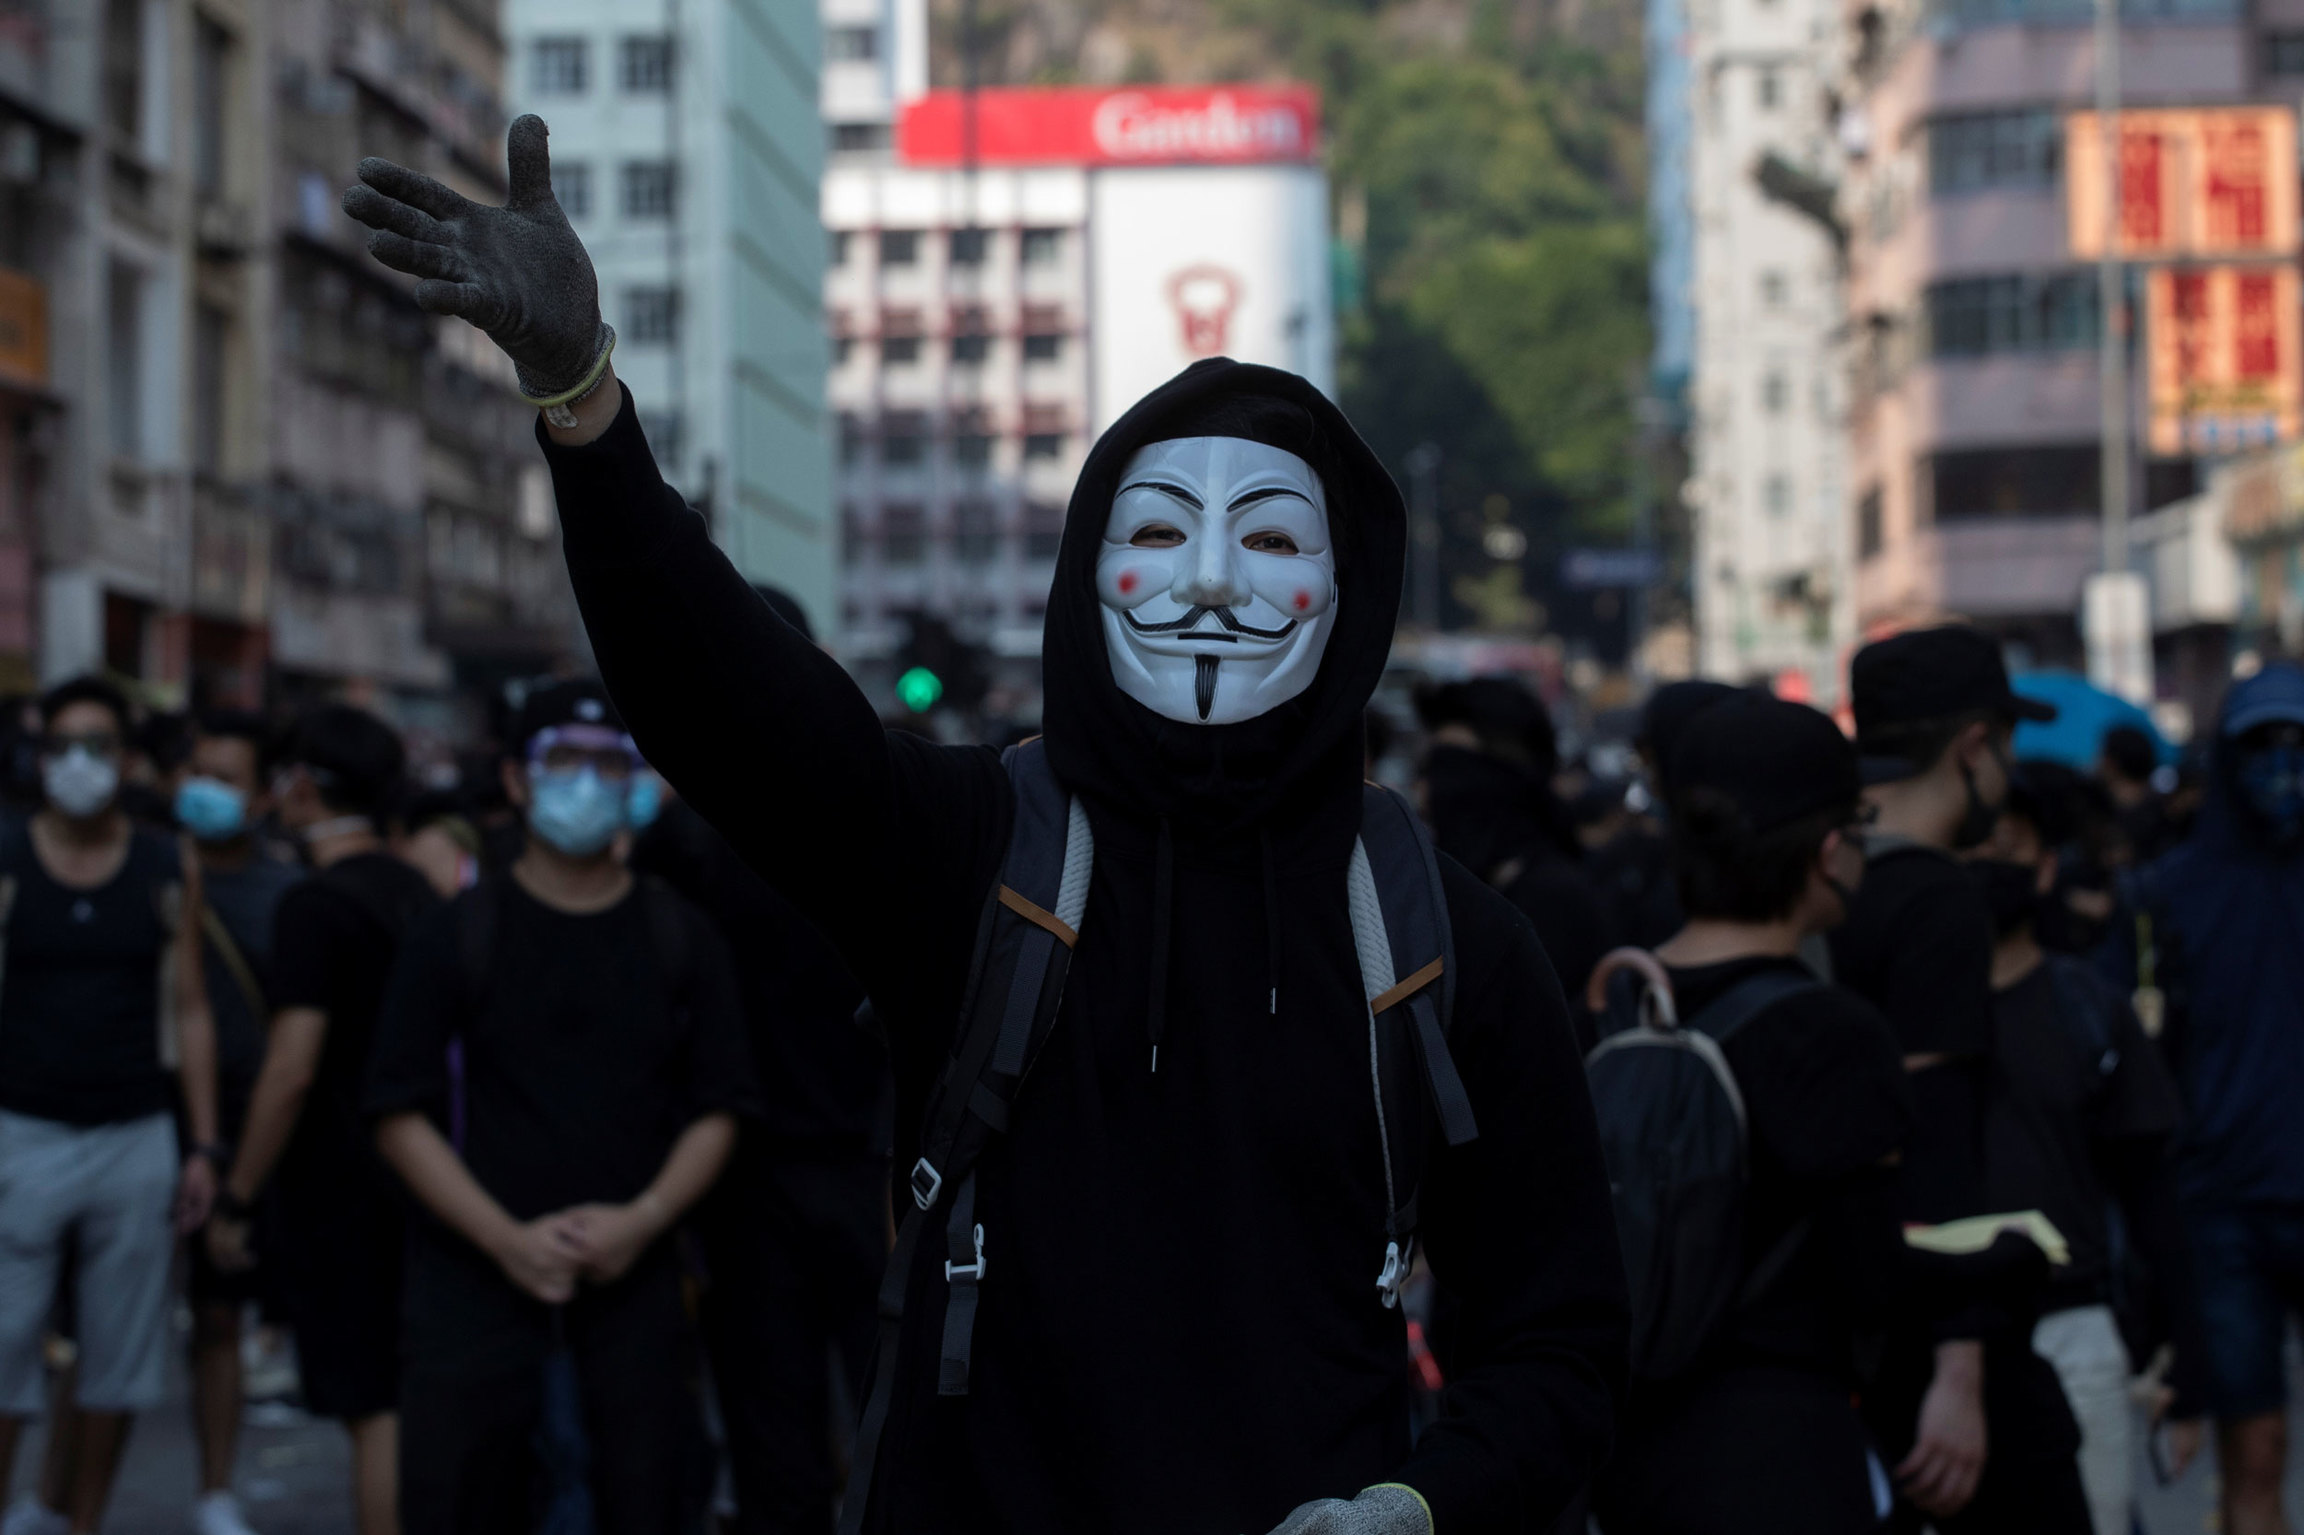 A person is shown center frame wearing a Guy Fawkes maks with their right raised hand in the air.